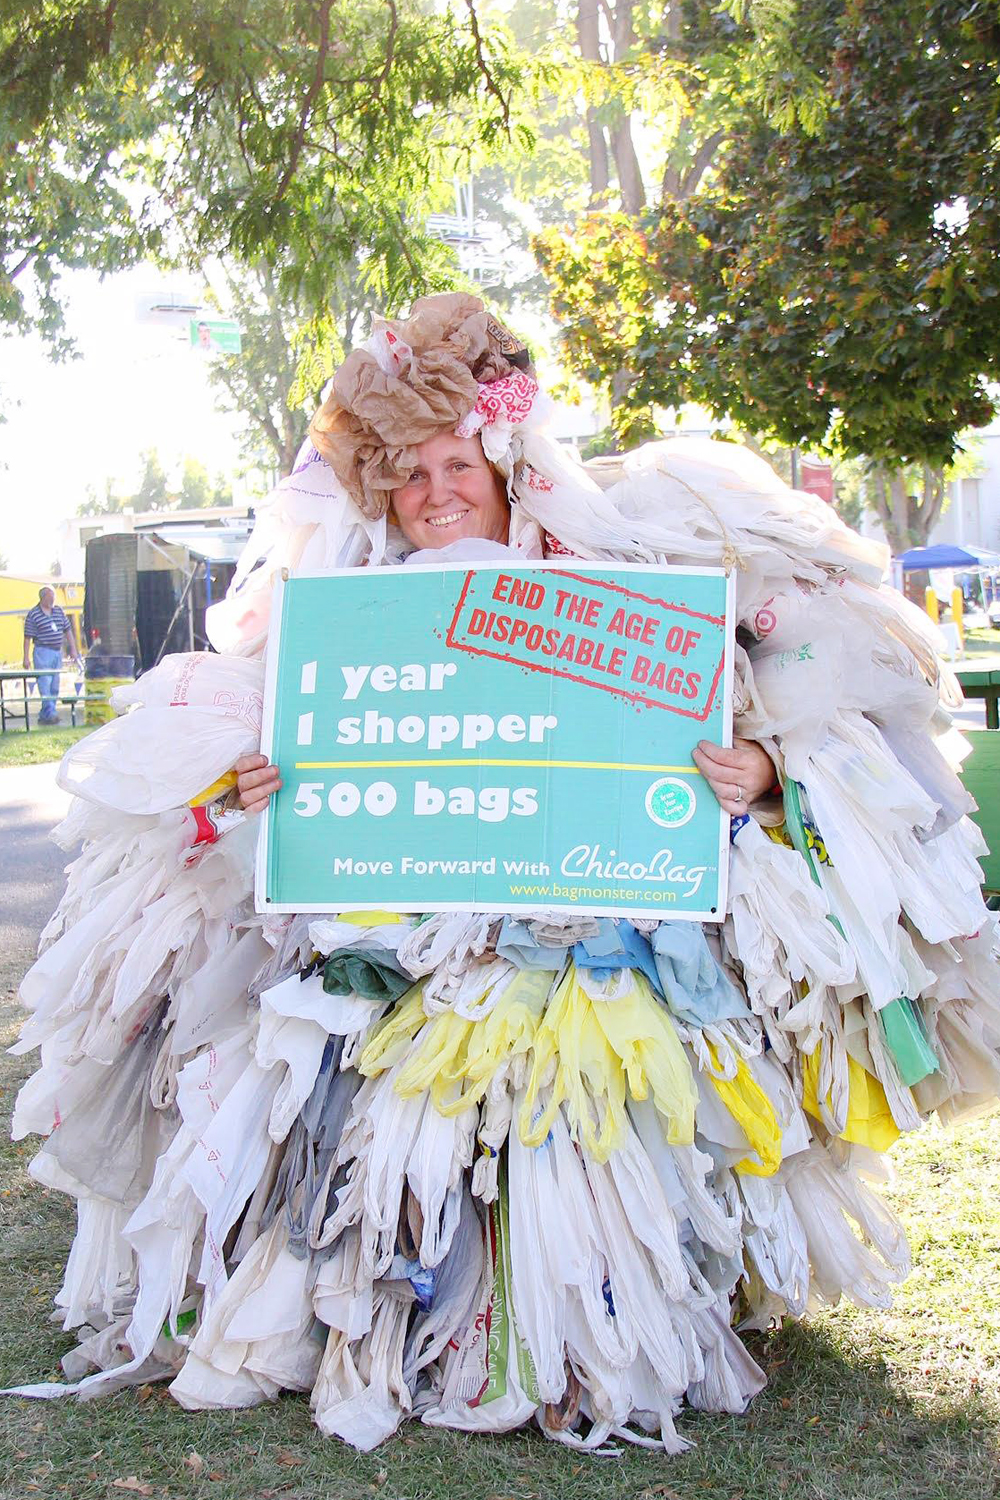 A volunteer wears a Bag Monster costume representing the 500 single-use disposable shopping bags used yearly by one person in the US. Bags that are not disposed of or recycled properly end up as litter hurting the beauty of our cities and the health of the environment.